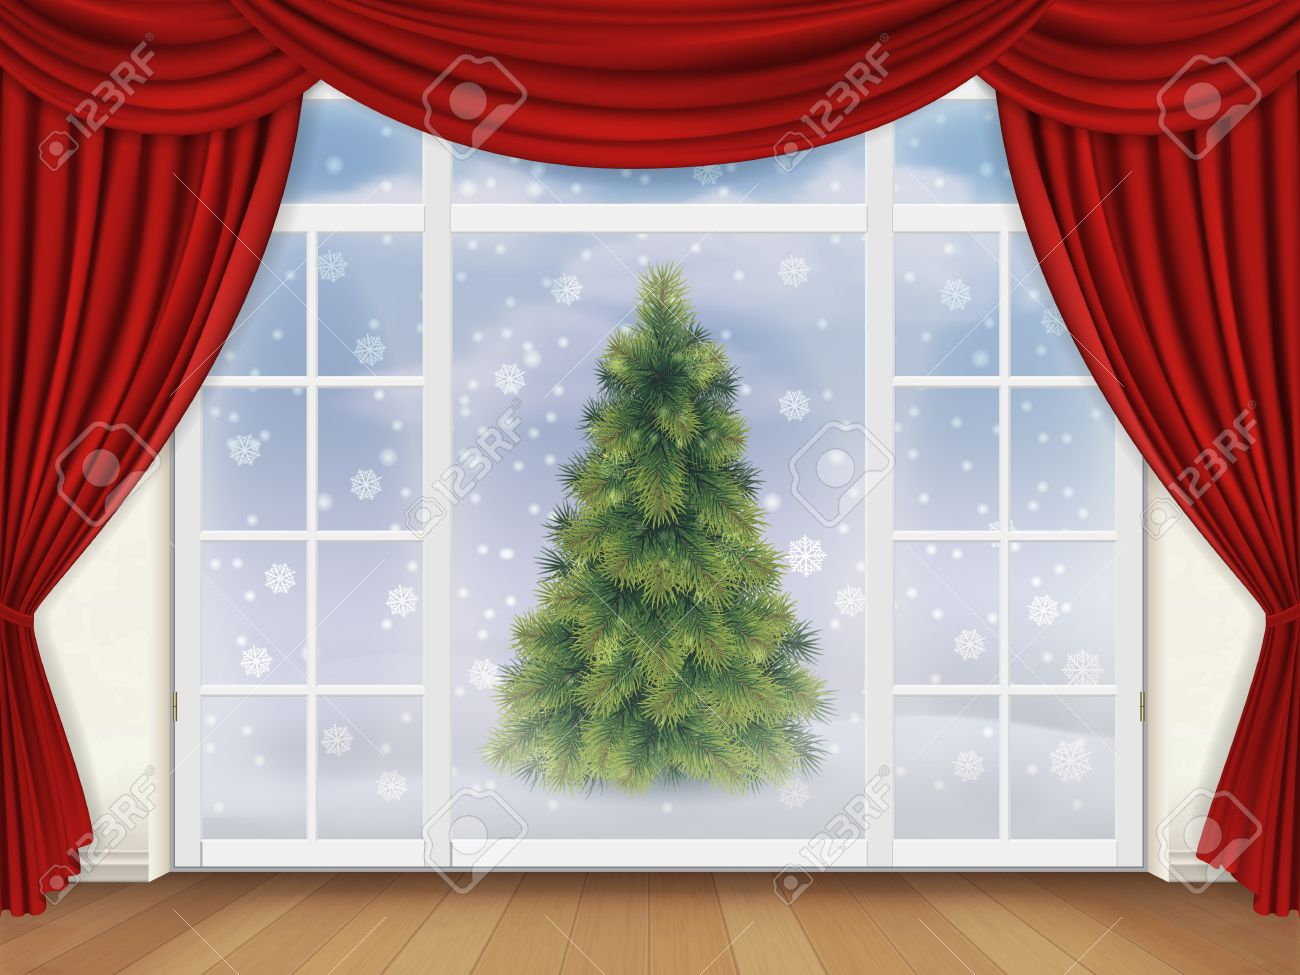 The View From The Living Room Through A Window With Red Curtains Royalty Free Cliparts Vectors And Stock Illustration Image 46456040